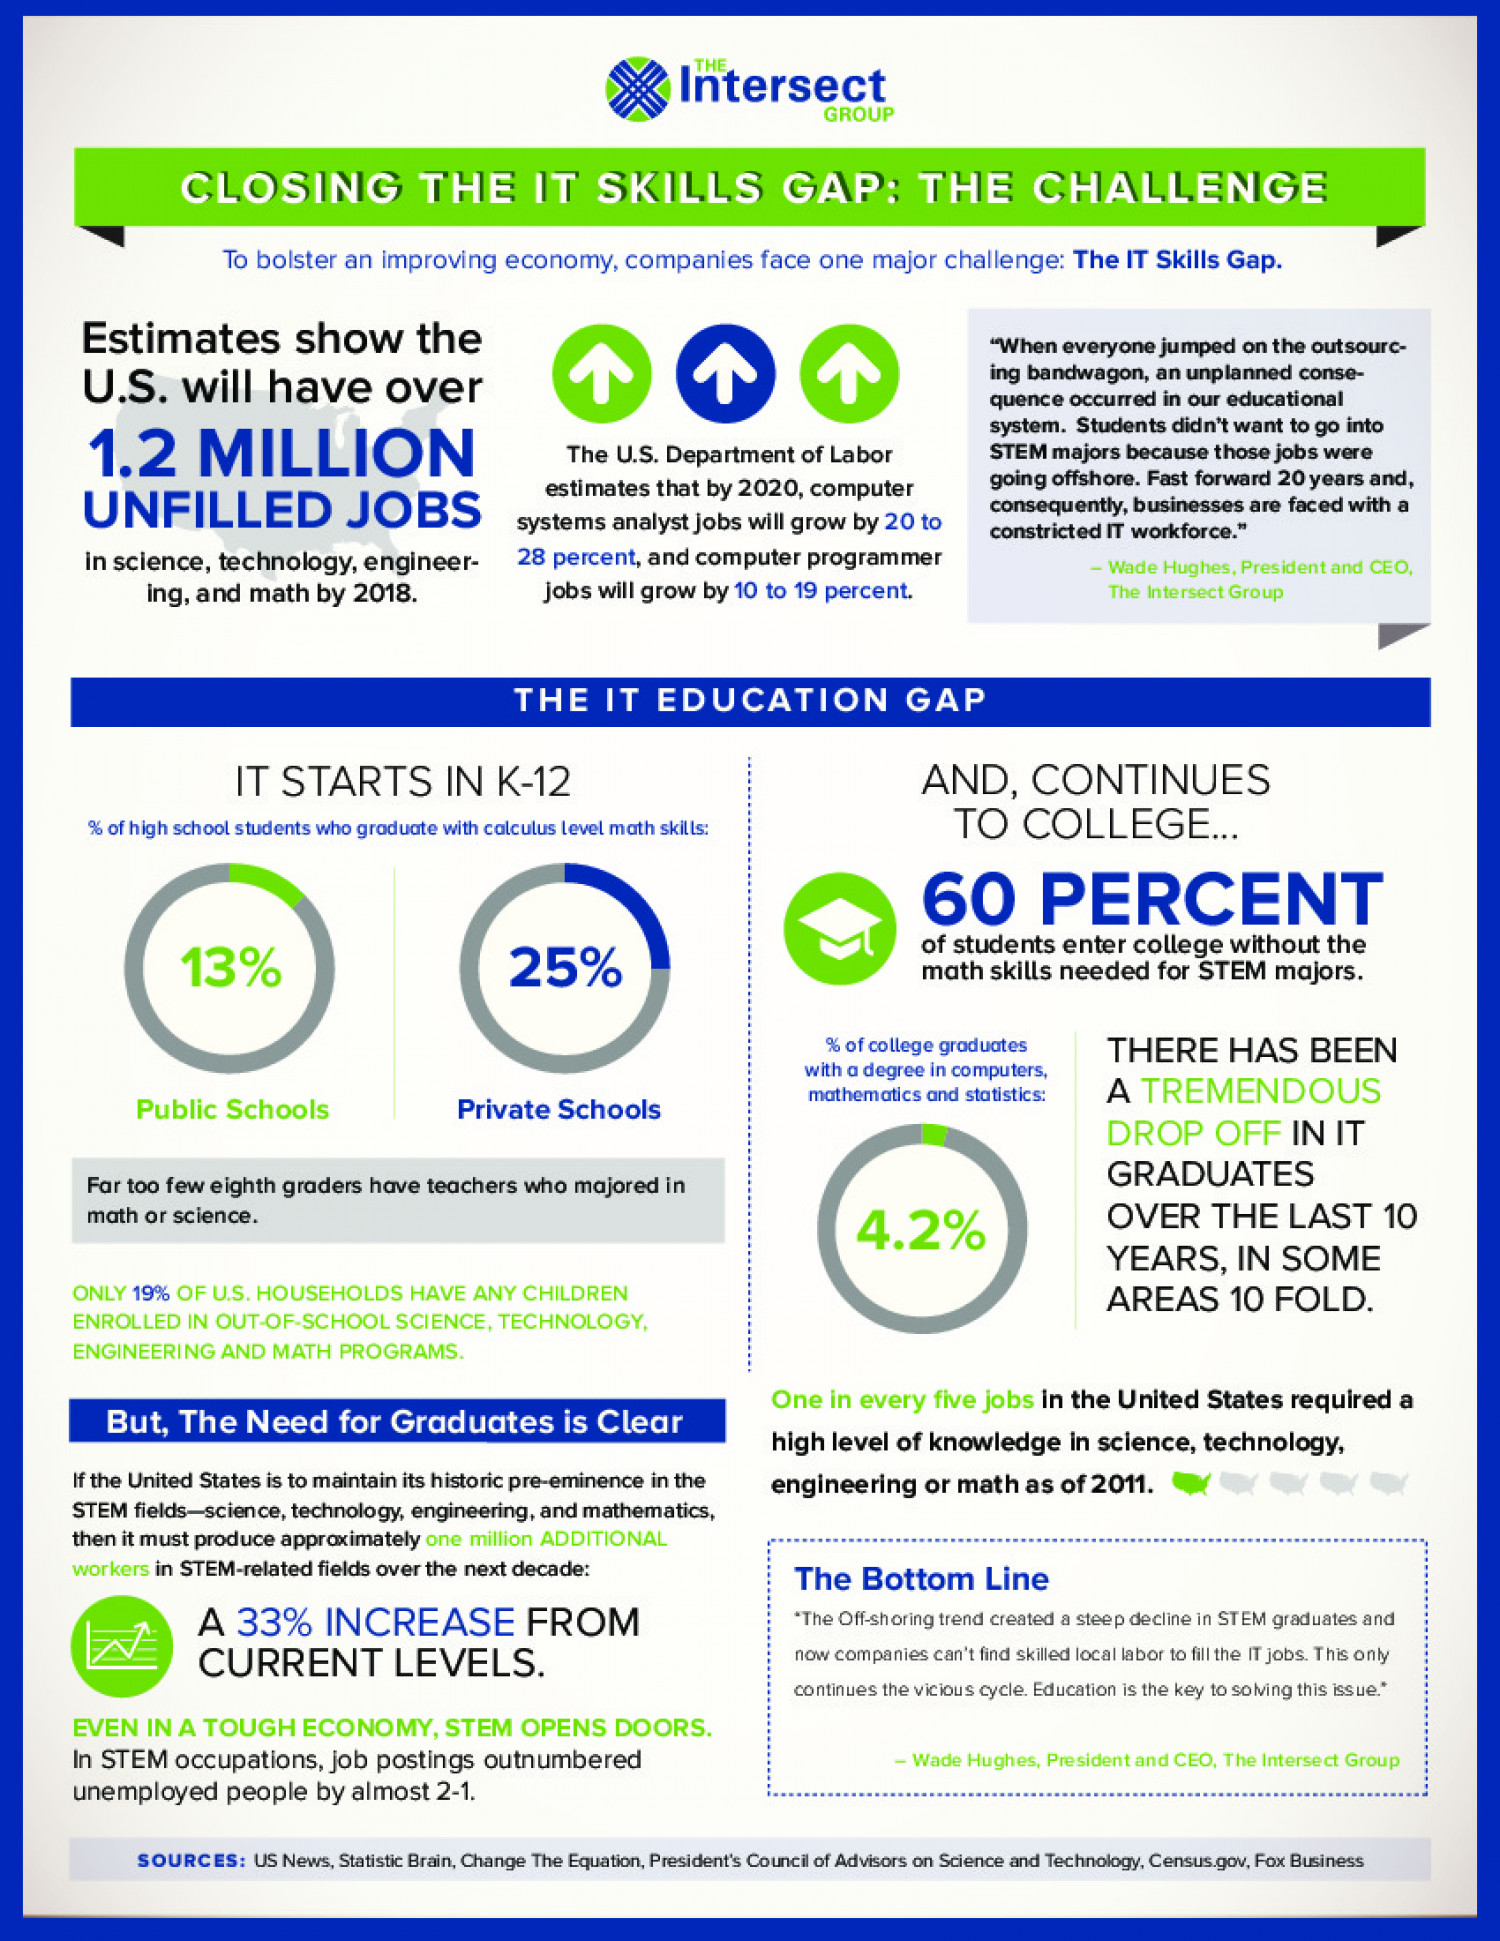 Closing the IT Skills Gap: The Challenge Infographic